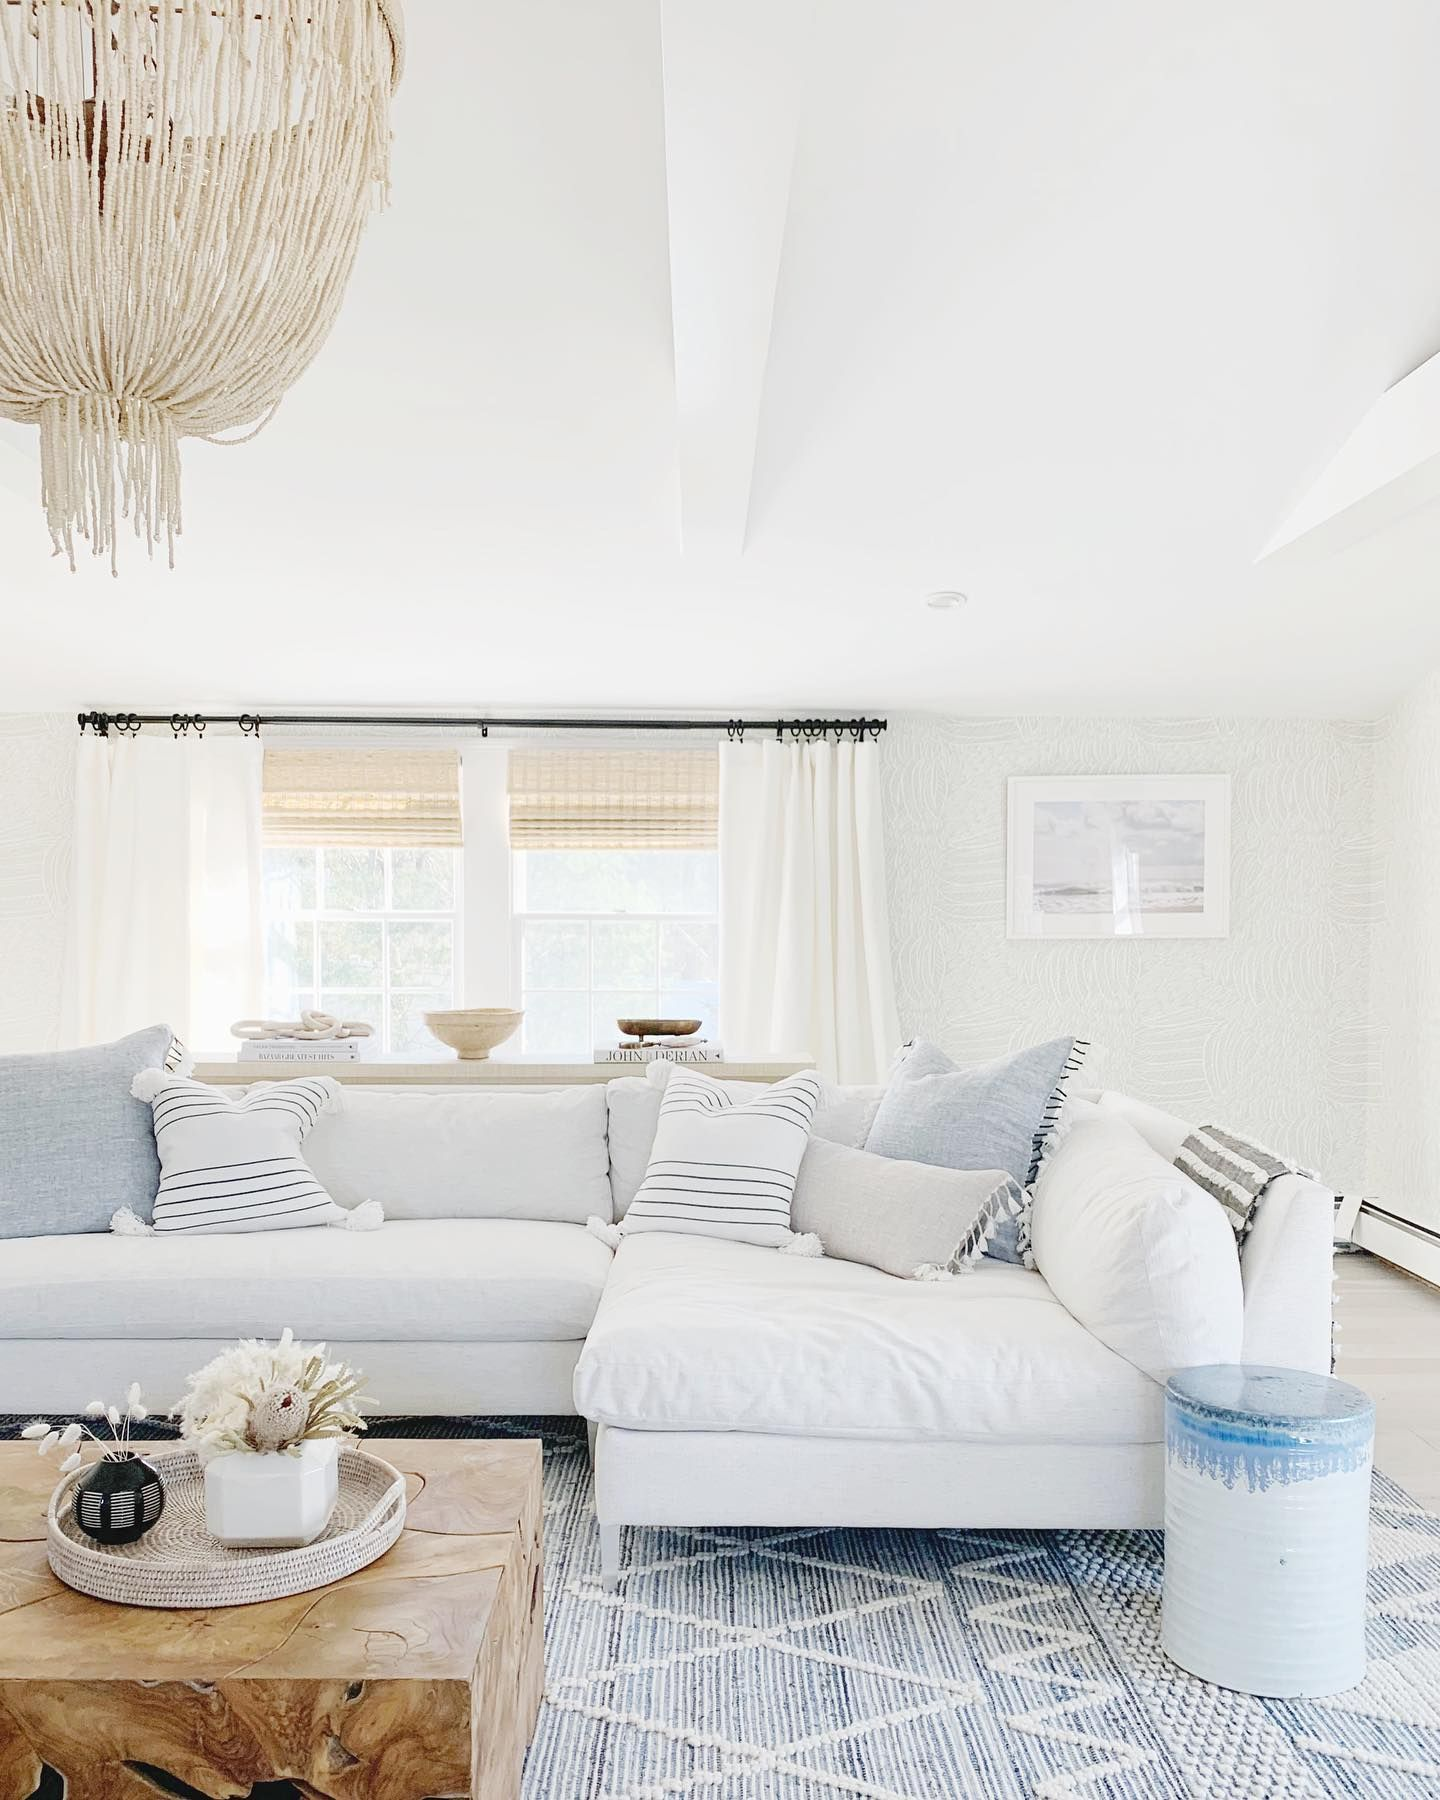 Pin By Chloe Michaels On Home Decor In 2021 Beach Living Room Rugs In Living Room Beach House Living Room